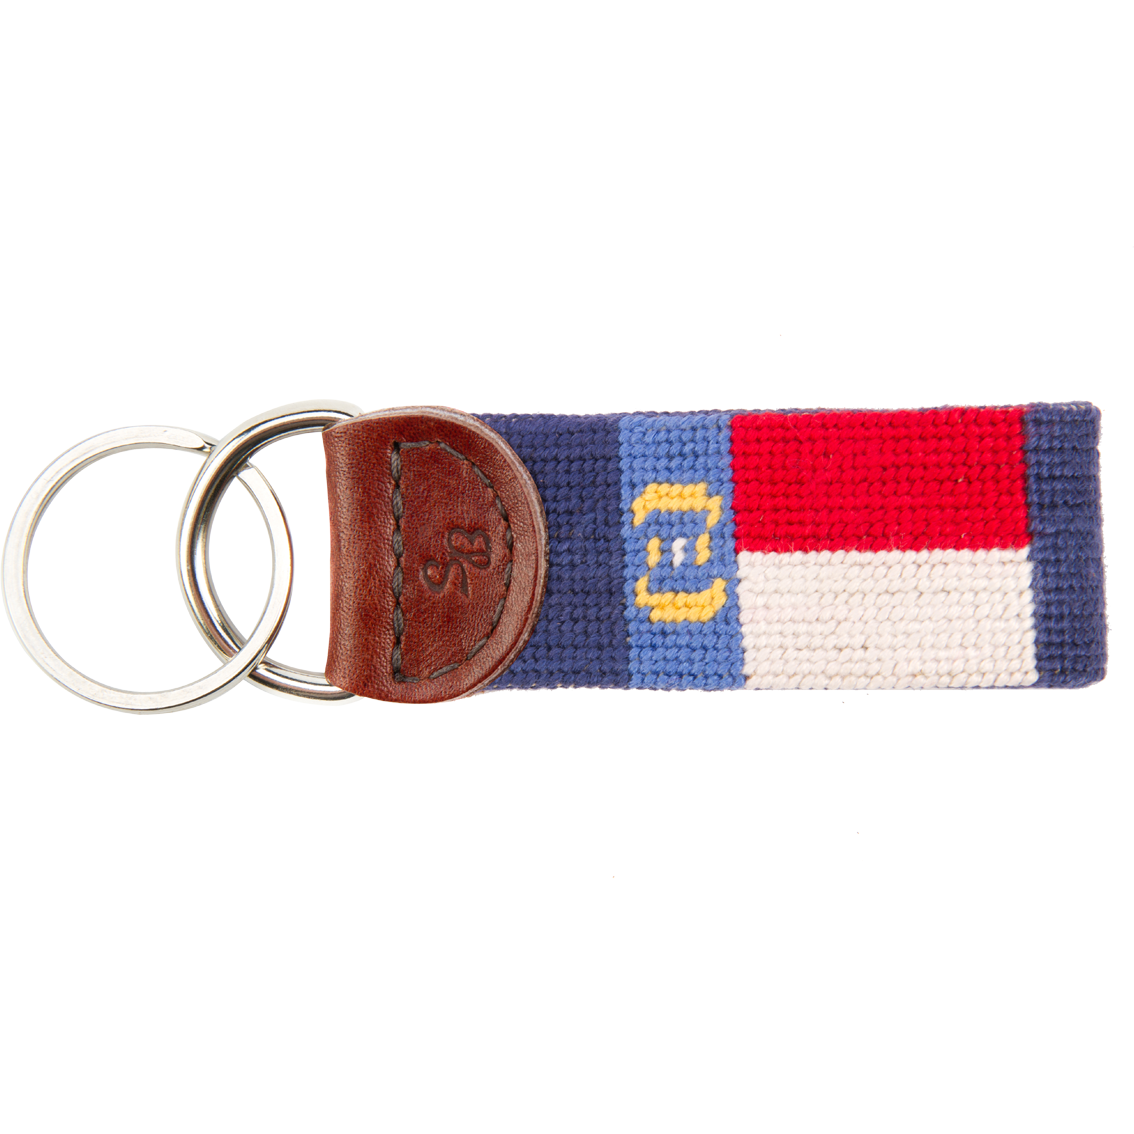 State of North Carolina Needlepoint Key Fob - OnwardReserve